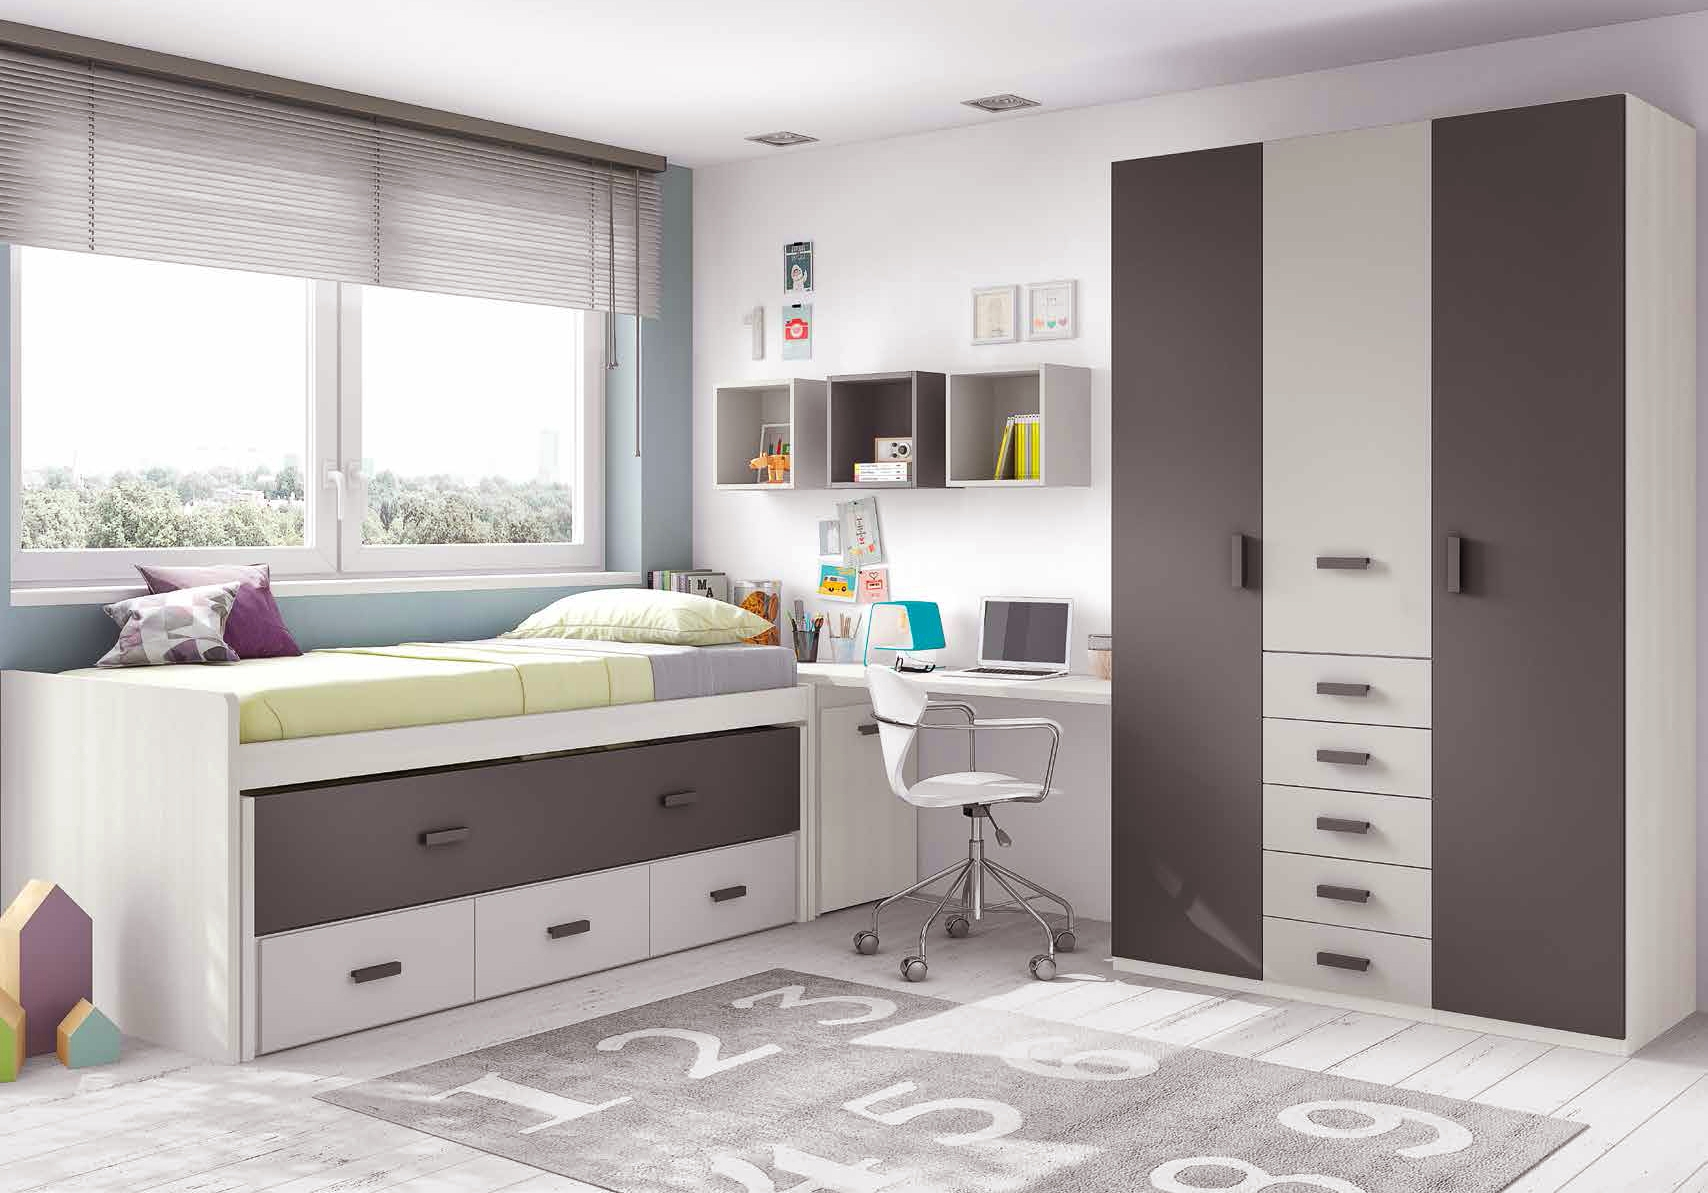 chambre ado garcon moderne avec lit gigogne glicerio. Black Bedroom Furniture Sets. Home Design Ideas